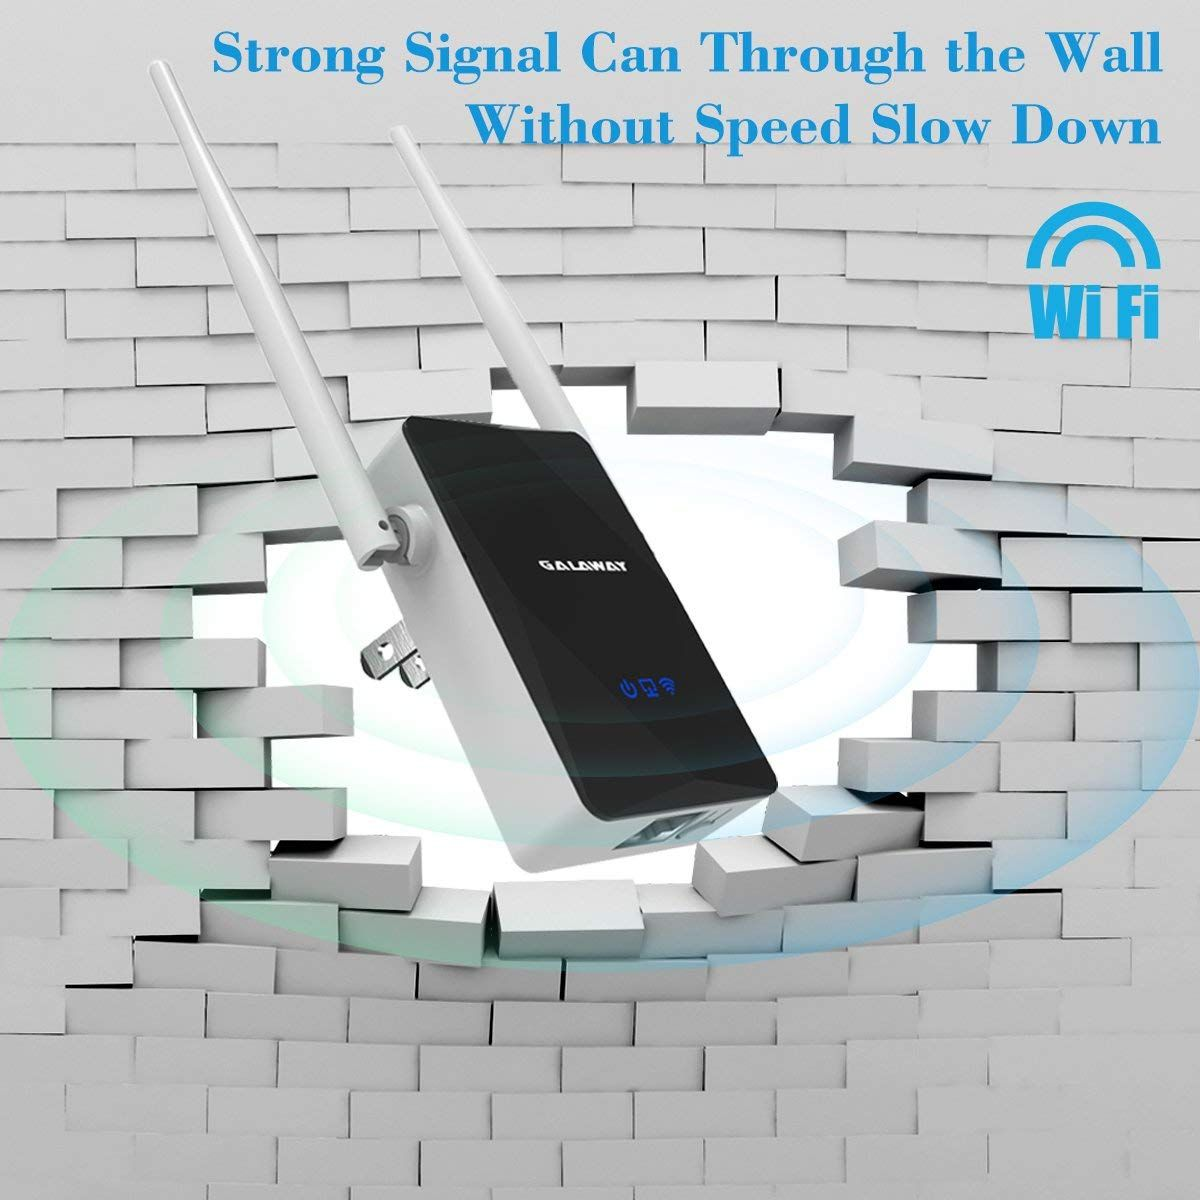 Amazon com: GALAWAY G308 300Mbps WiFi Range Extender with